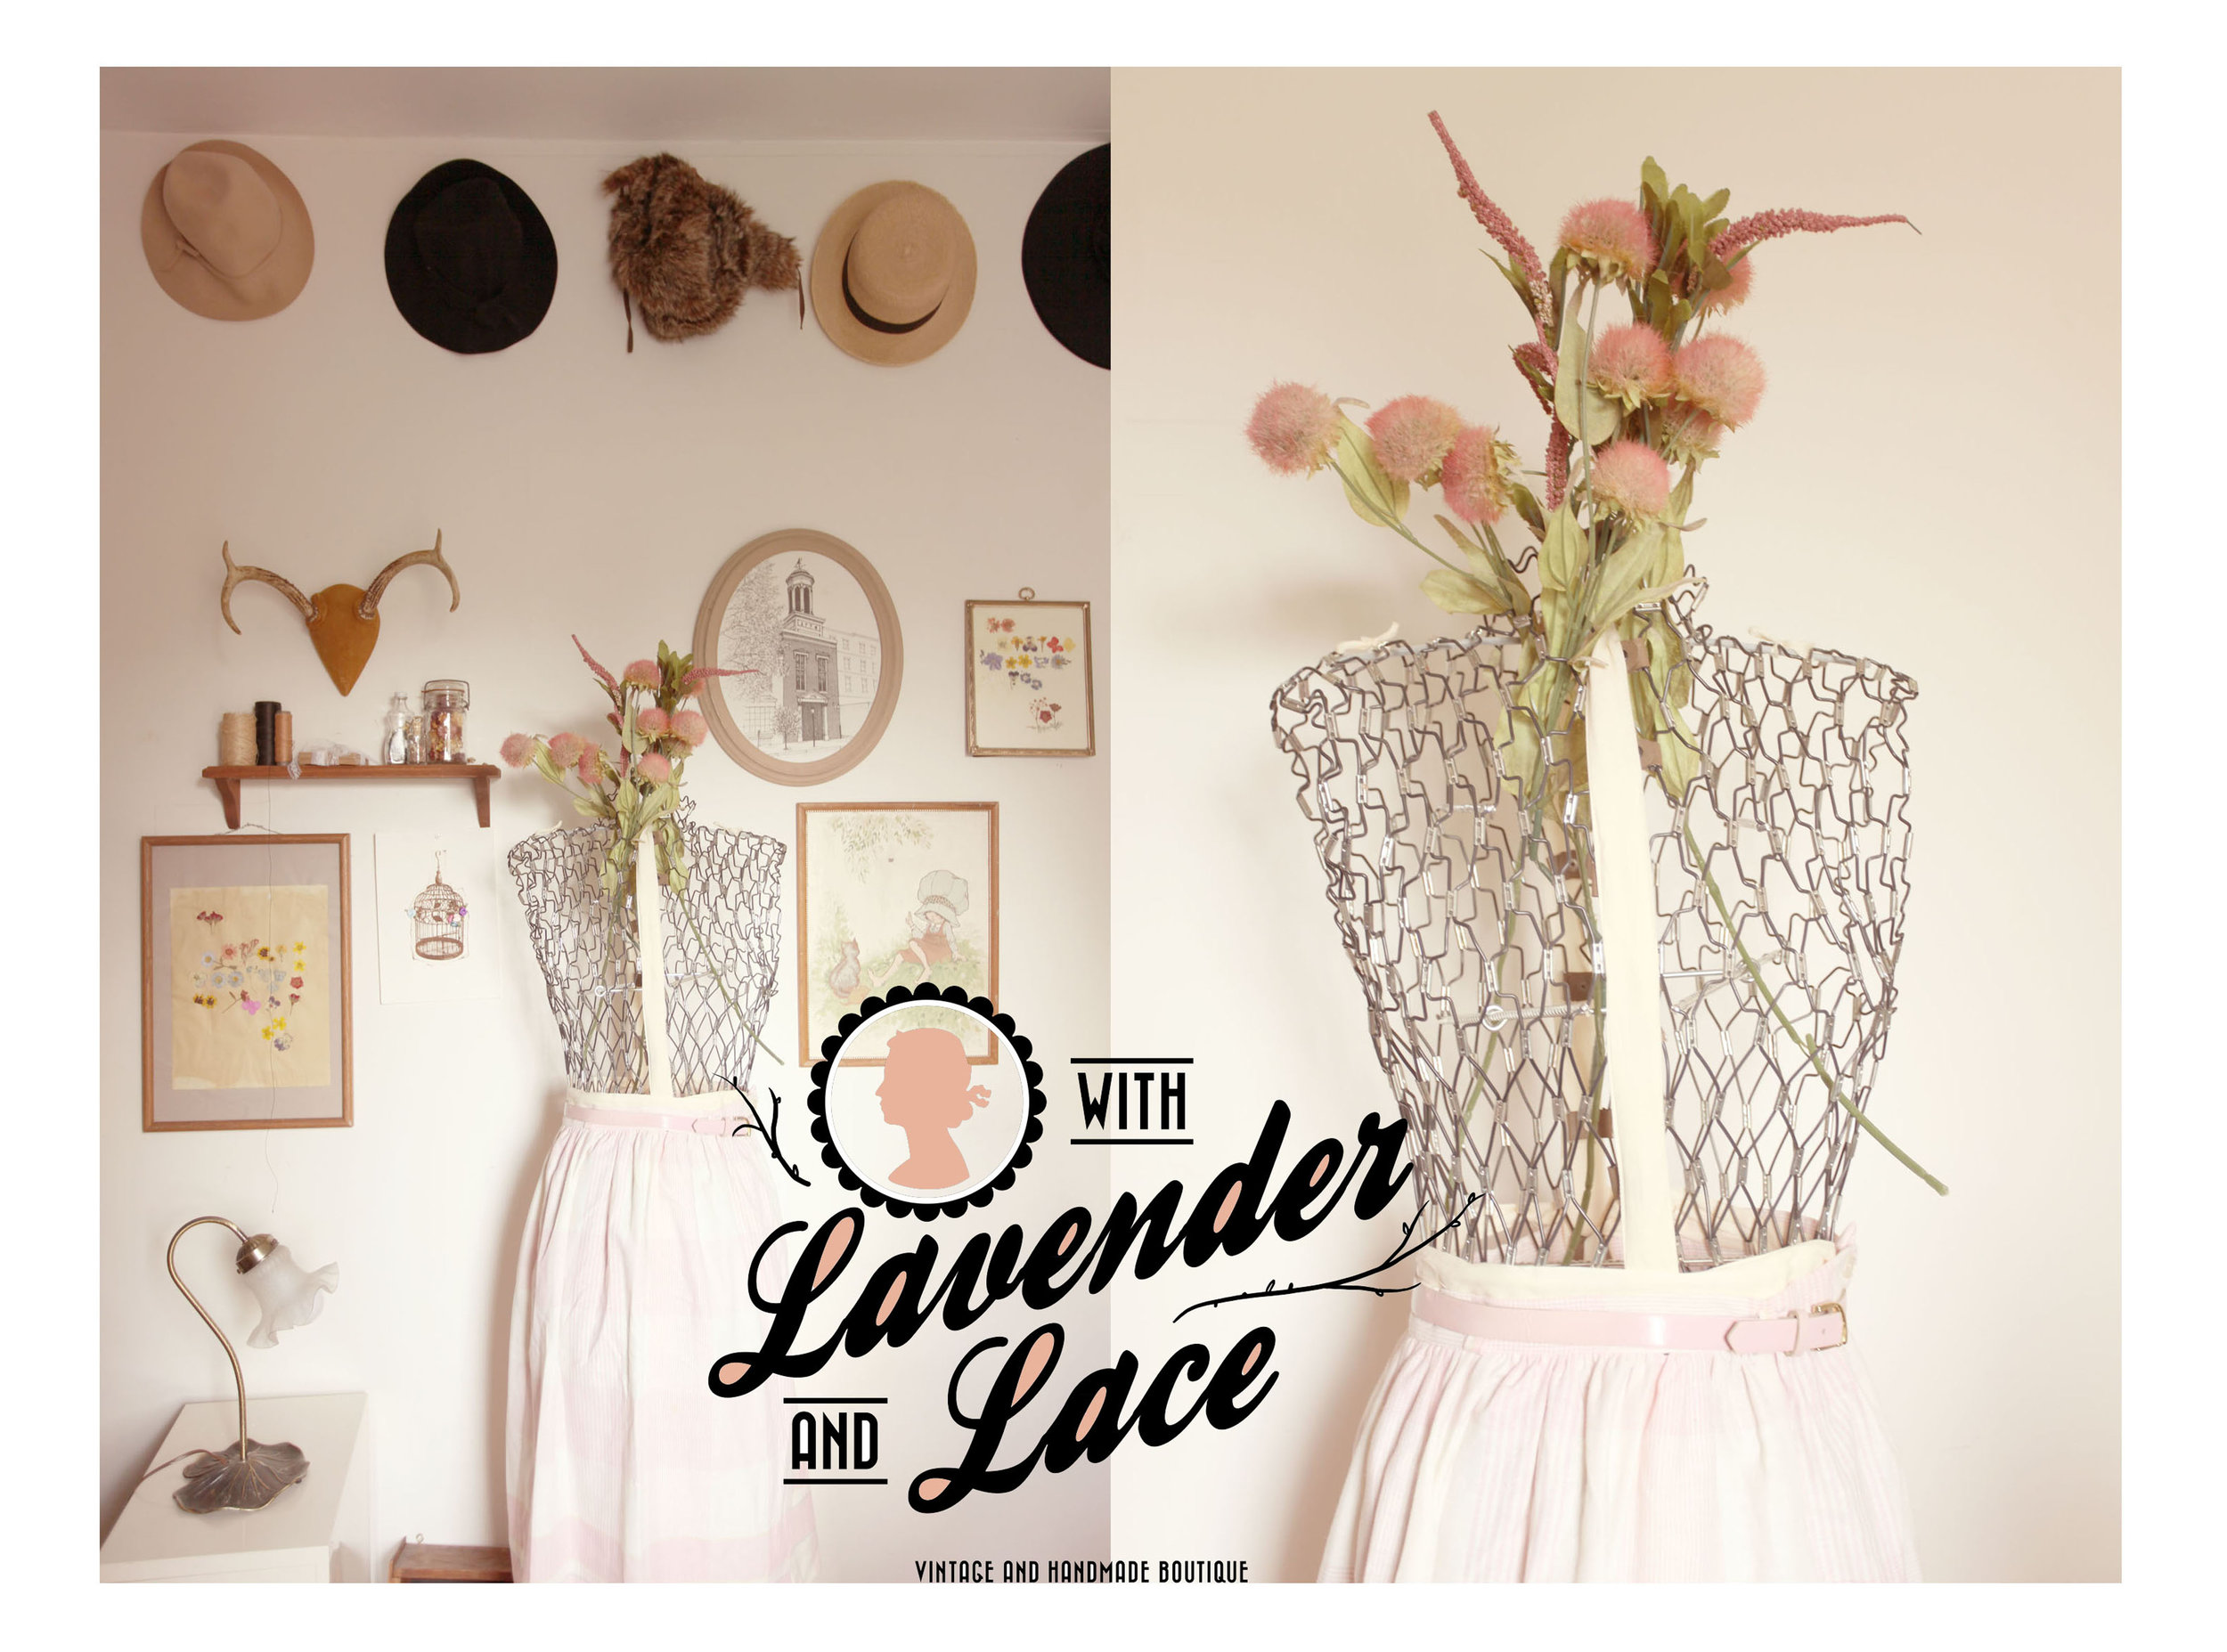 'With Lavender and Lace' Brings Ageless Apparel to Ghent 2012